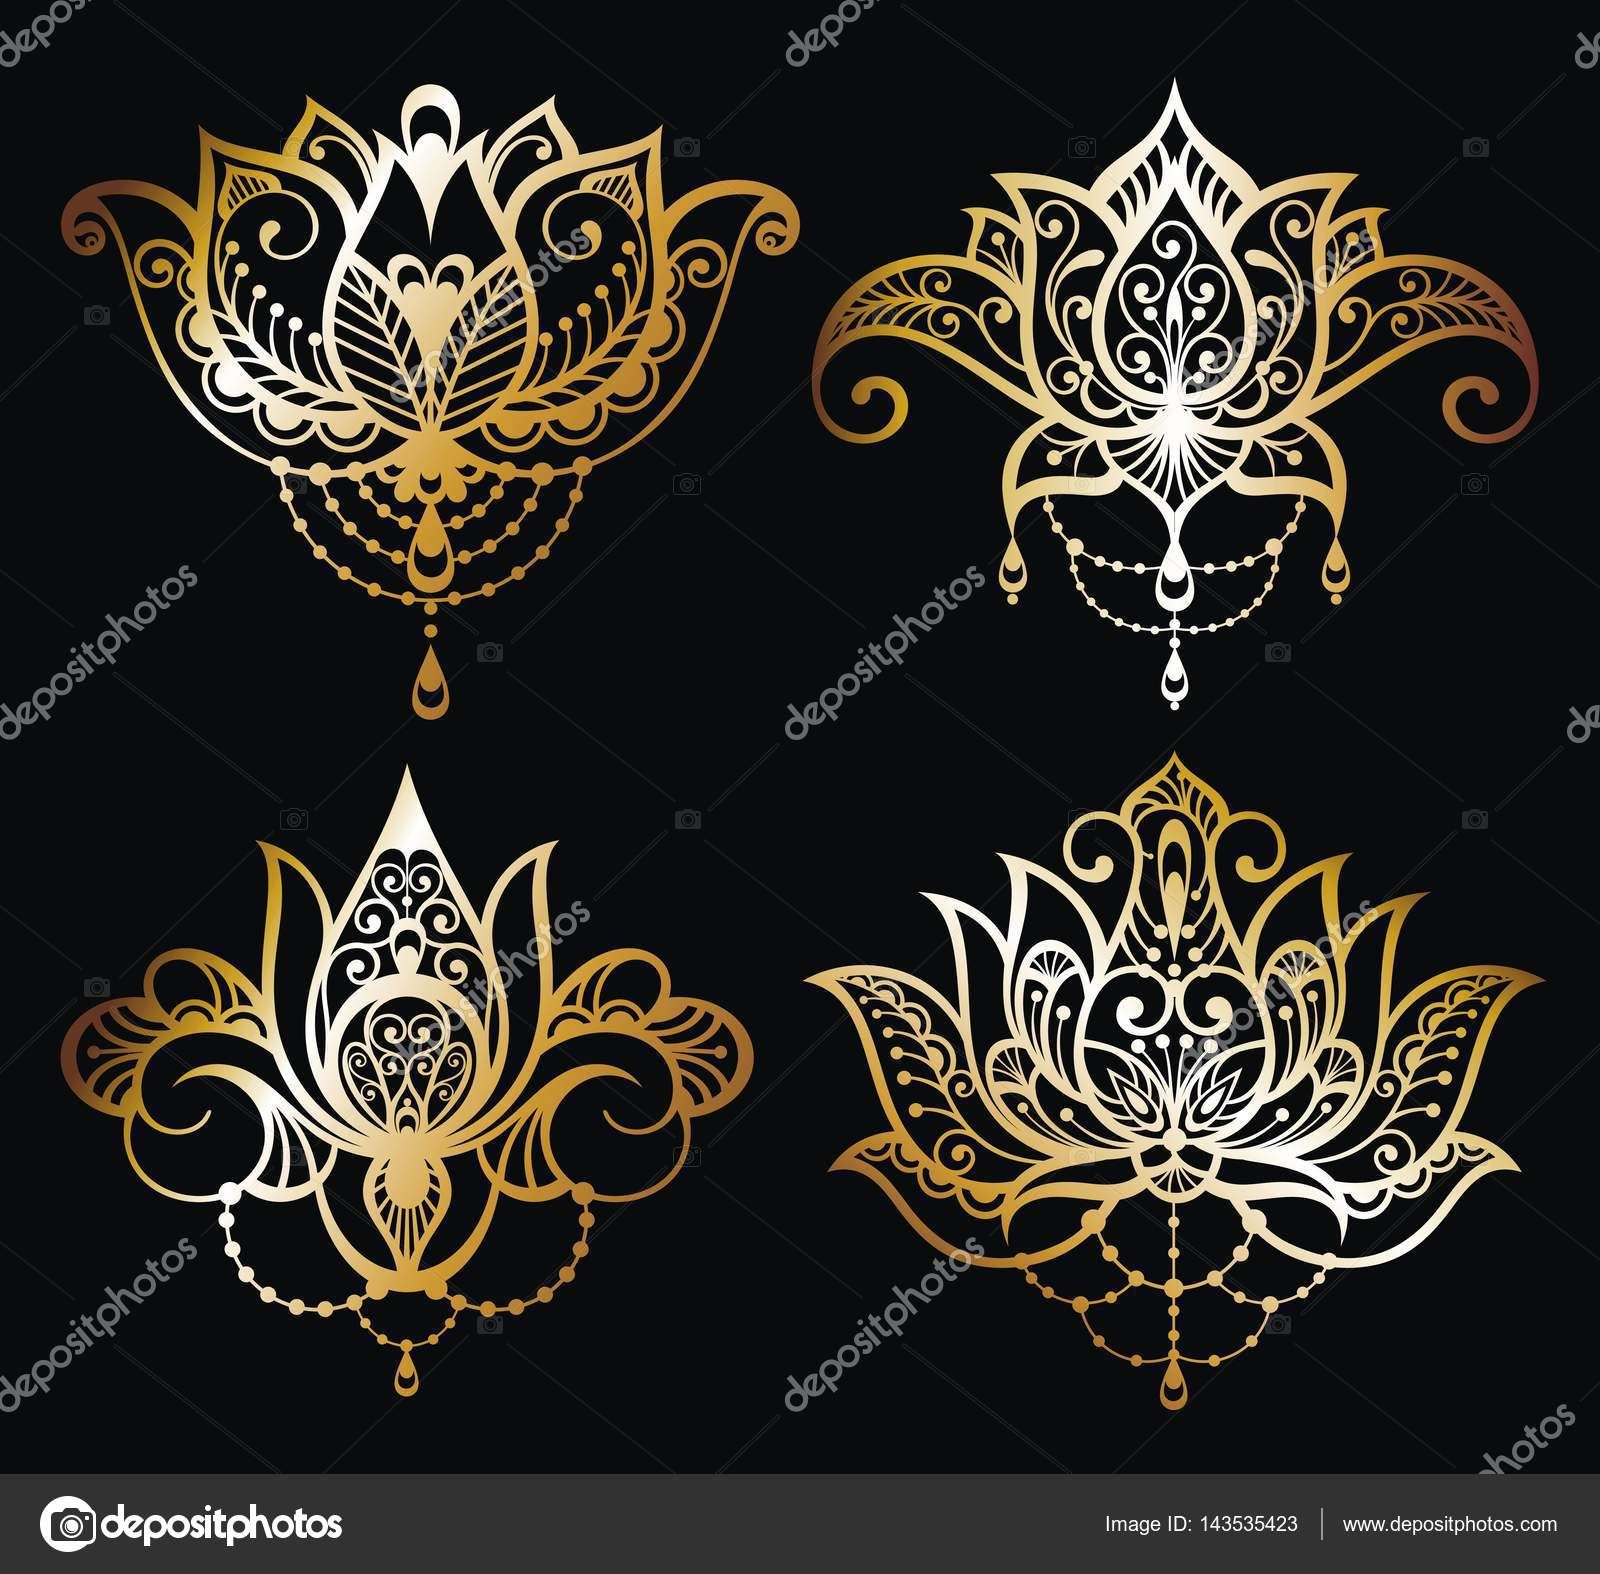 Download Gold Lotus logo vector art set design — Stock